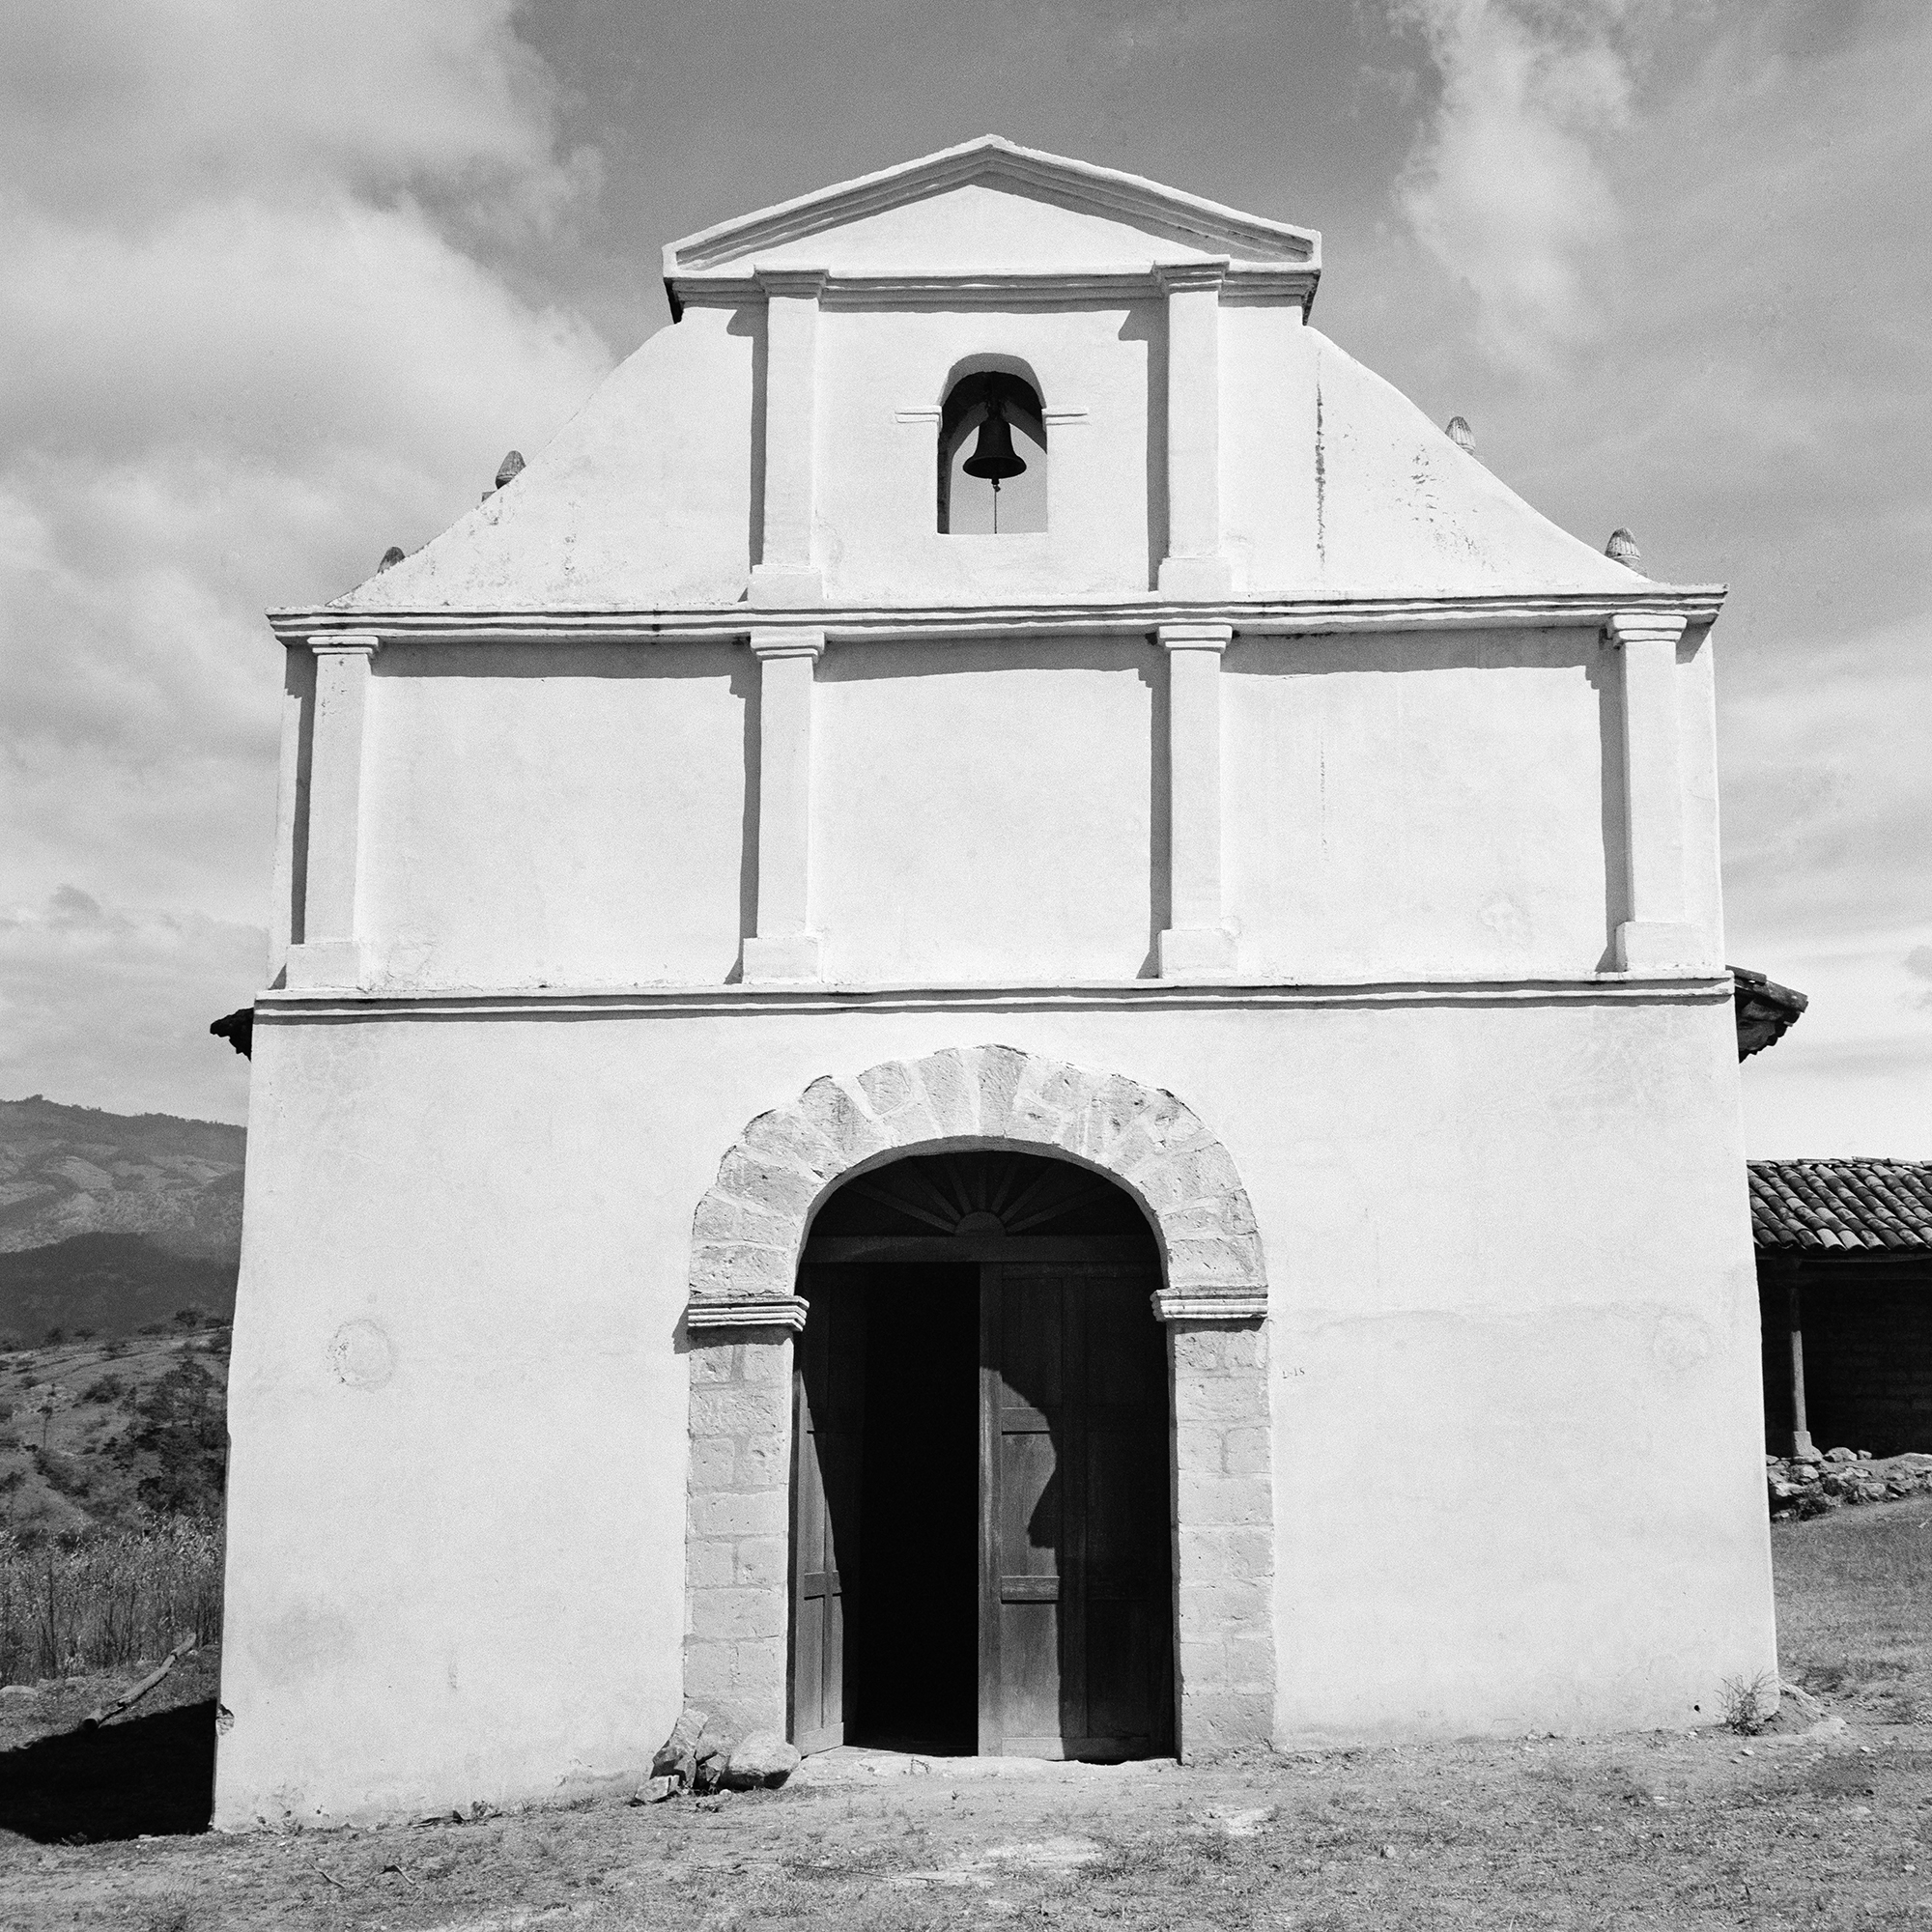 A stone Roman Catholic church stands in a rural highland area of El Quiché province, Guatemala, January 1, 1984. Guatemala was introduced to the Catholic religion during the Spanish colonization of the Americas in the 16th century.